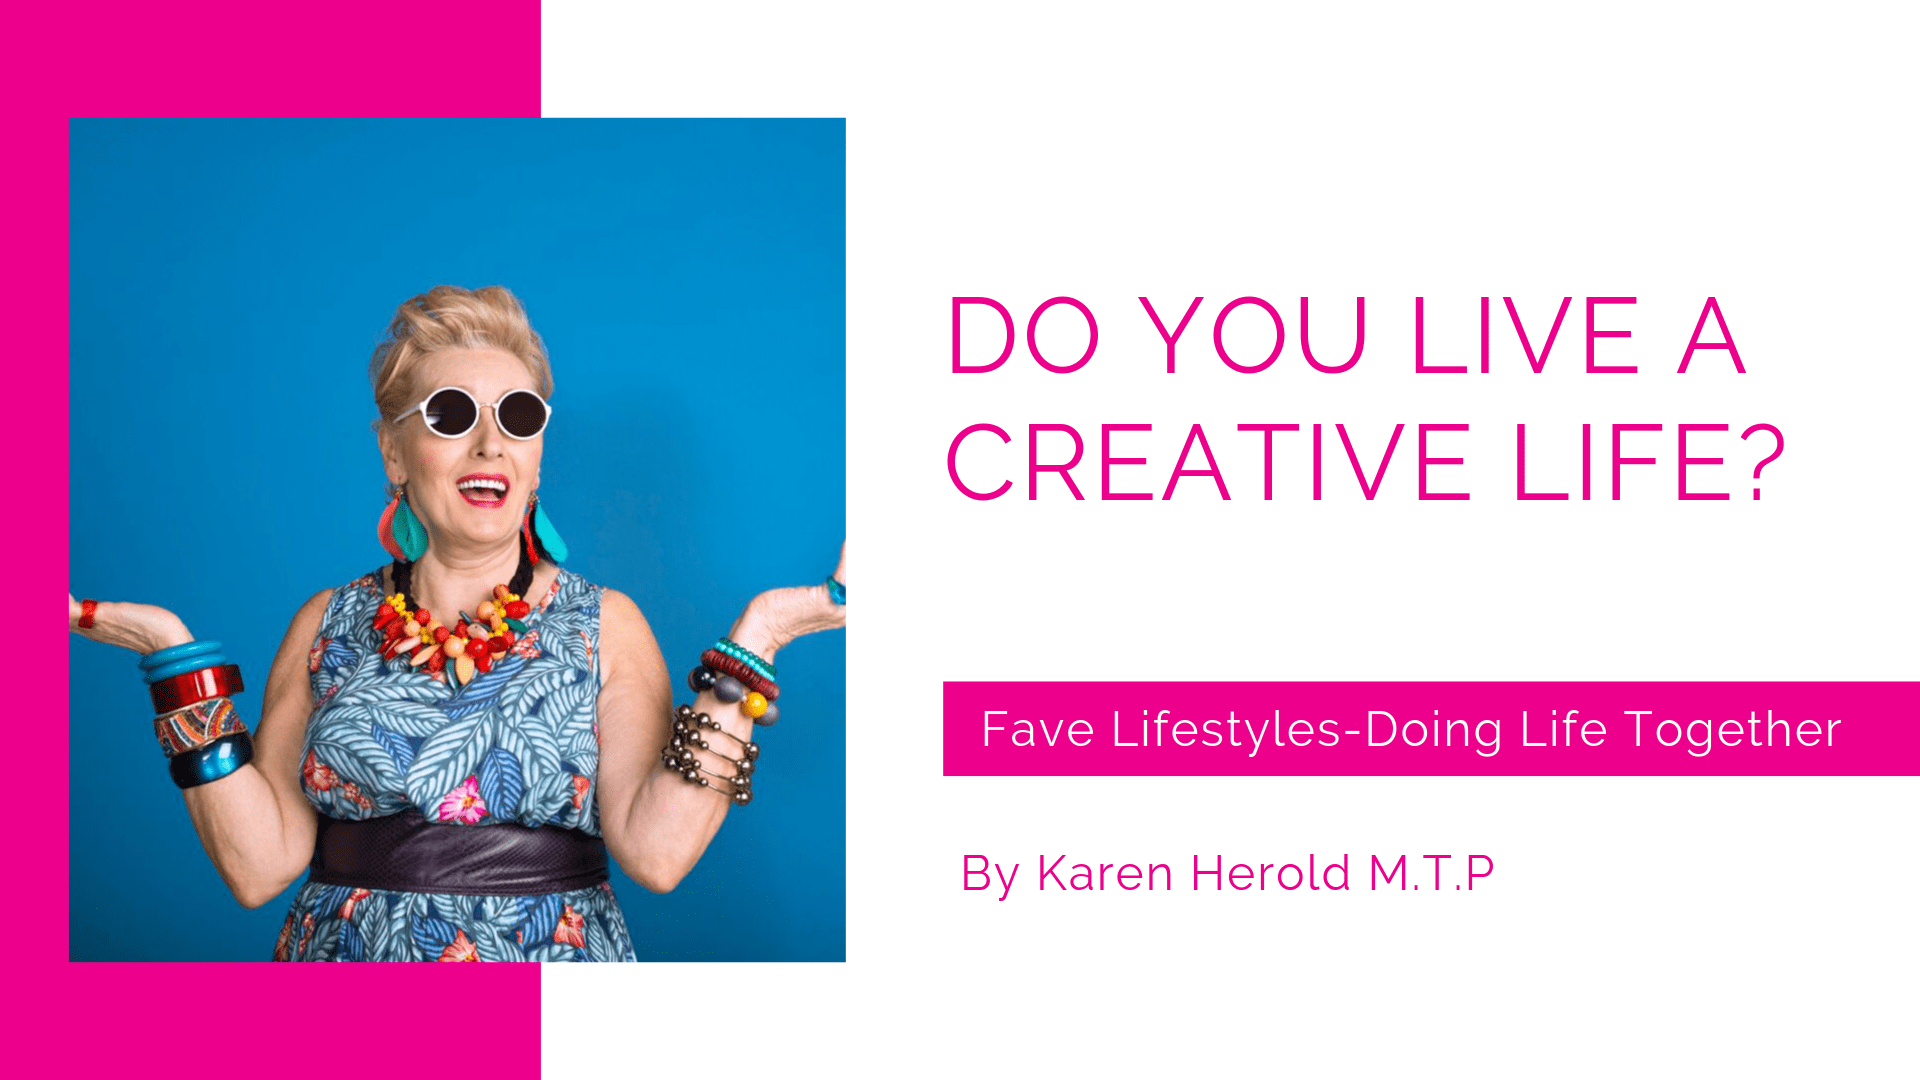 Do You Live a Creative Life?